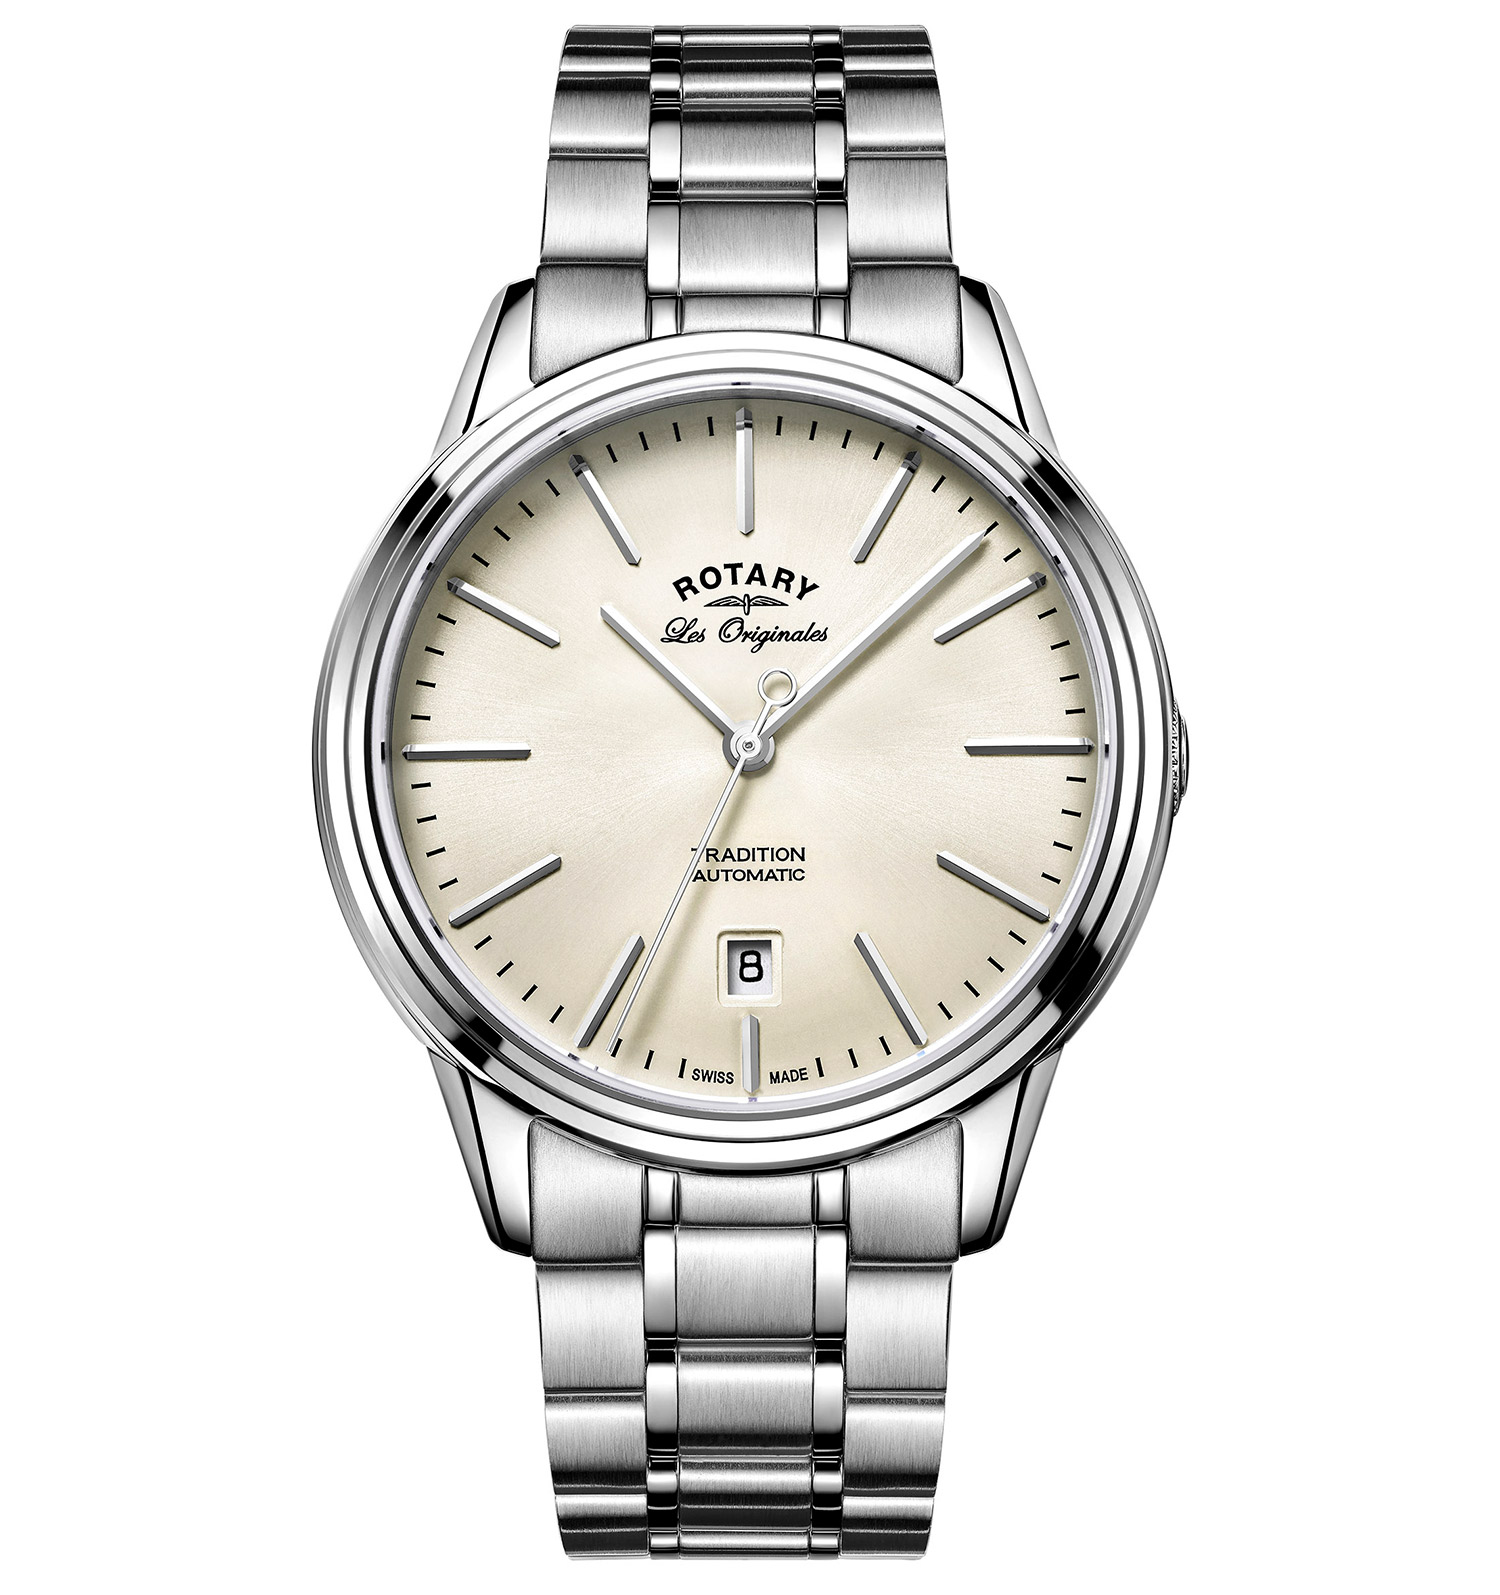 ROTARY LES ORIGINALES TRADITION S STEEL SWISS GENTS AUTOMATIC WATCH